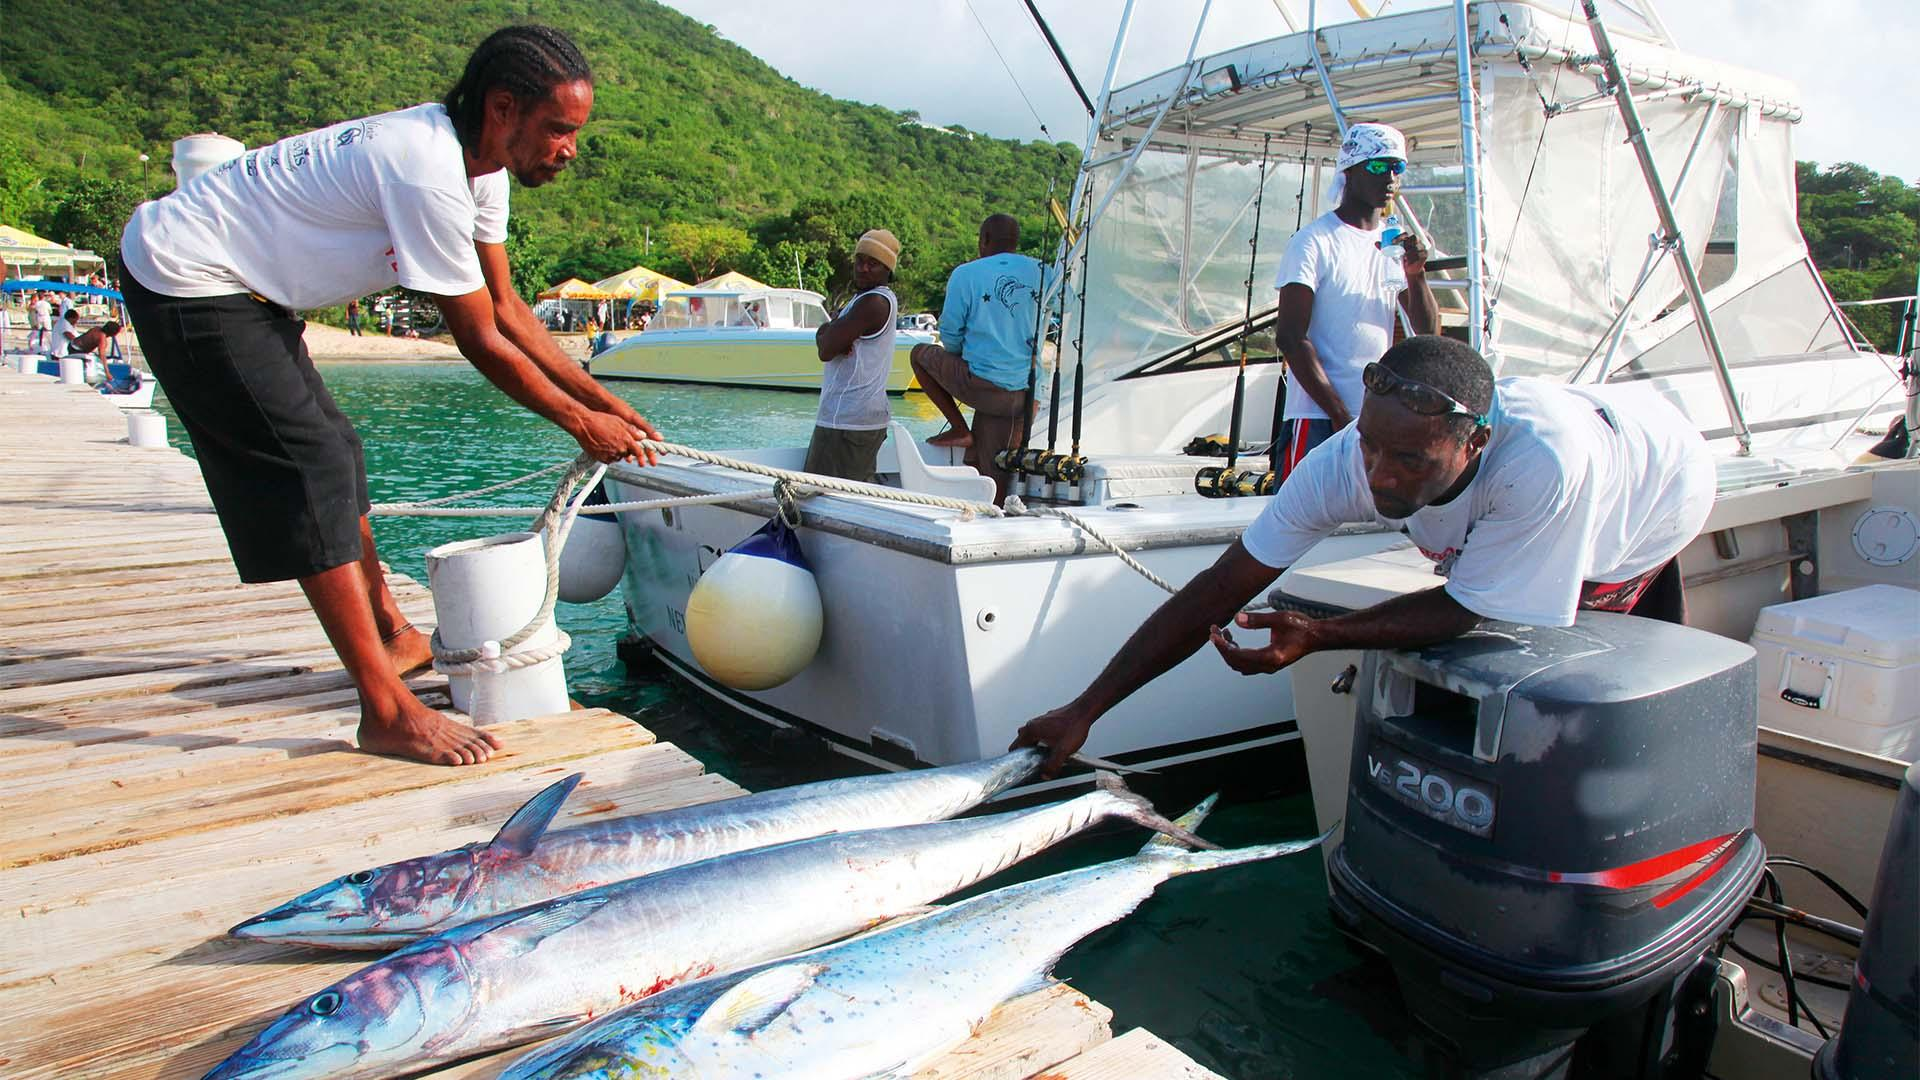 Fishermen at work in boat on Nevis